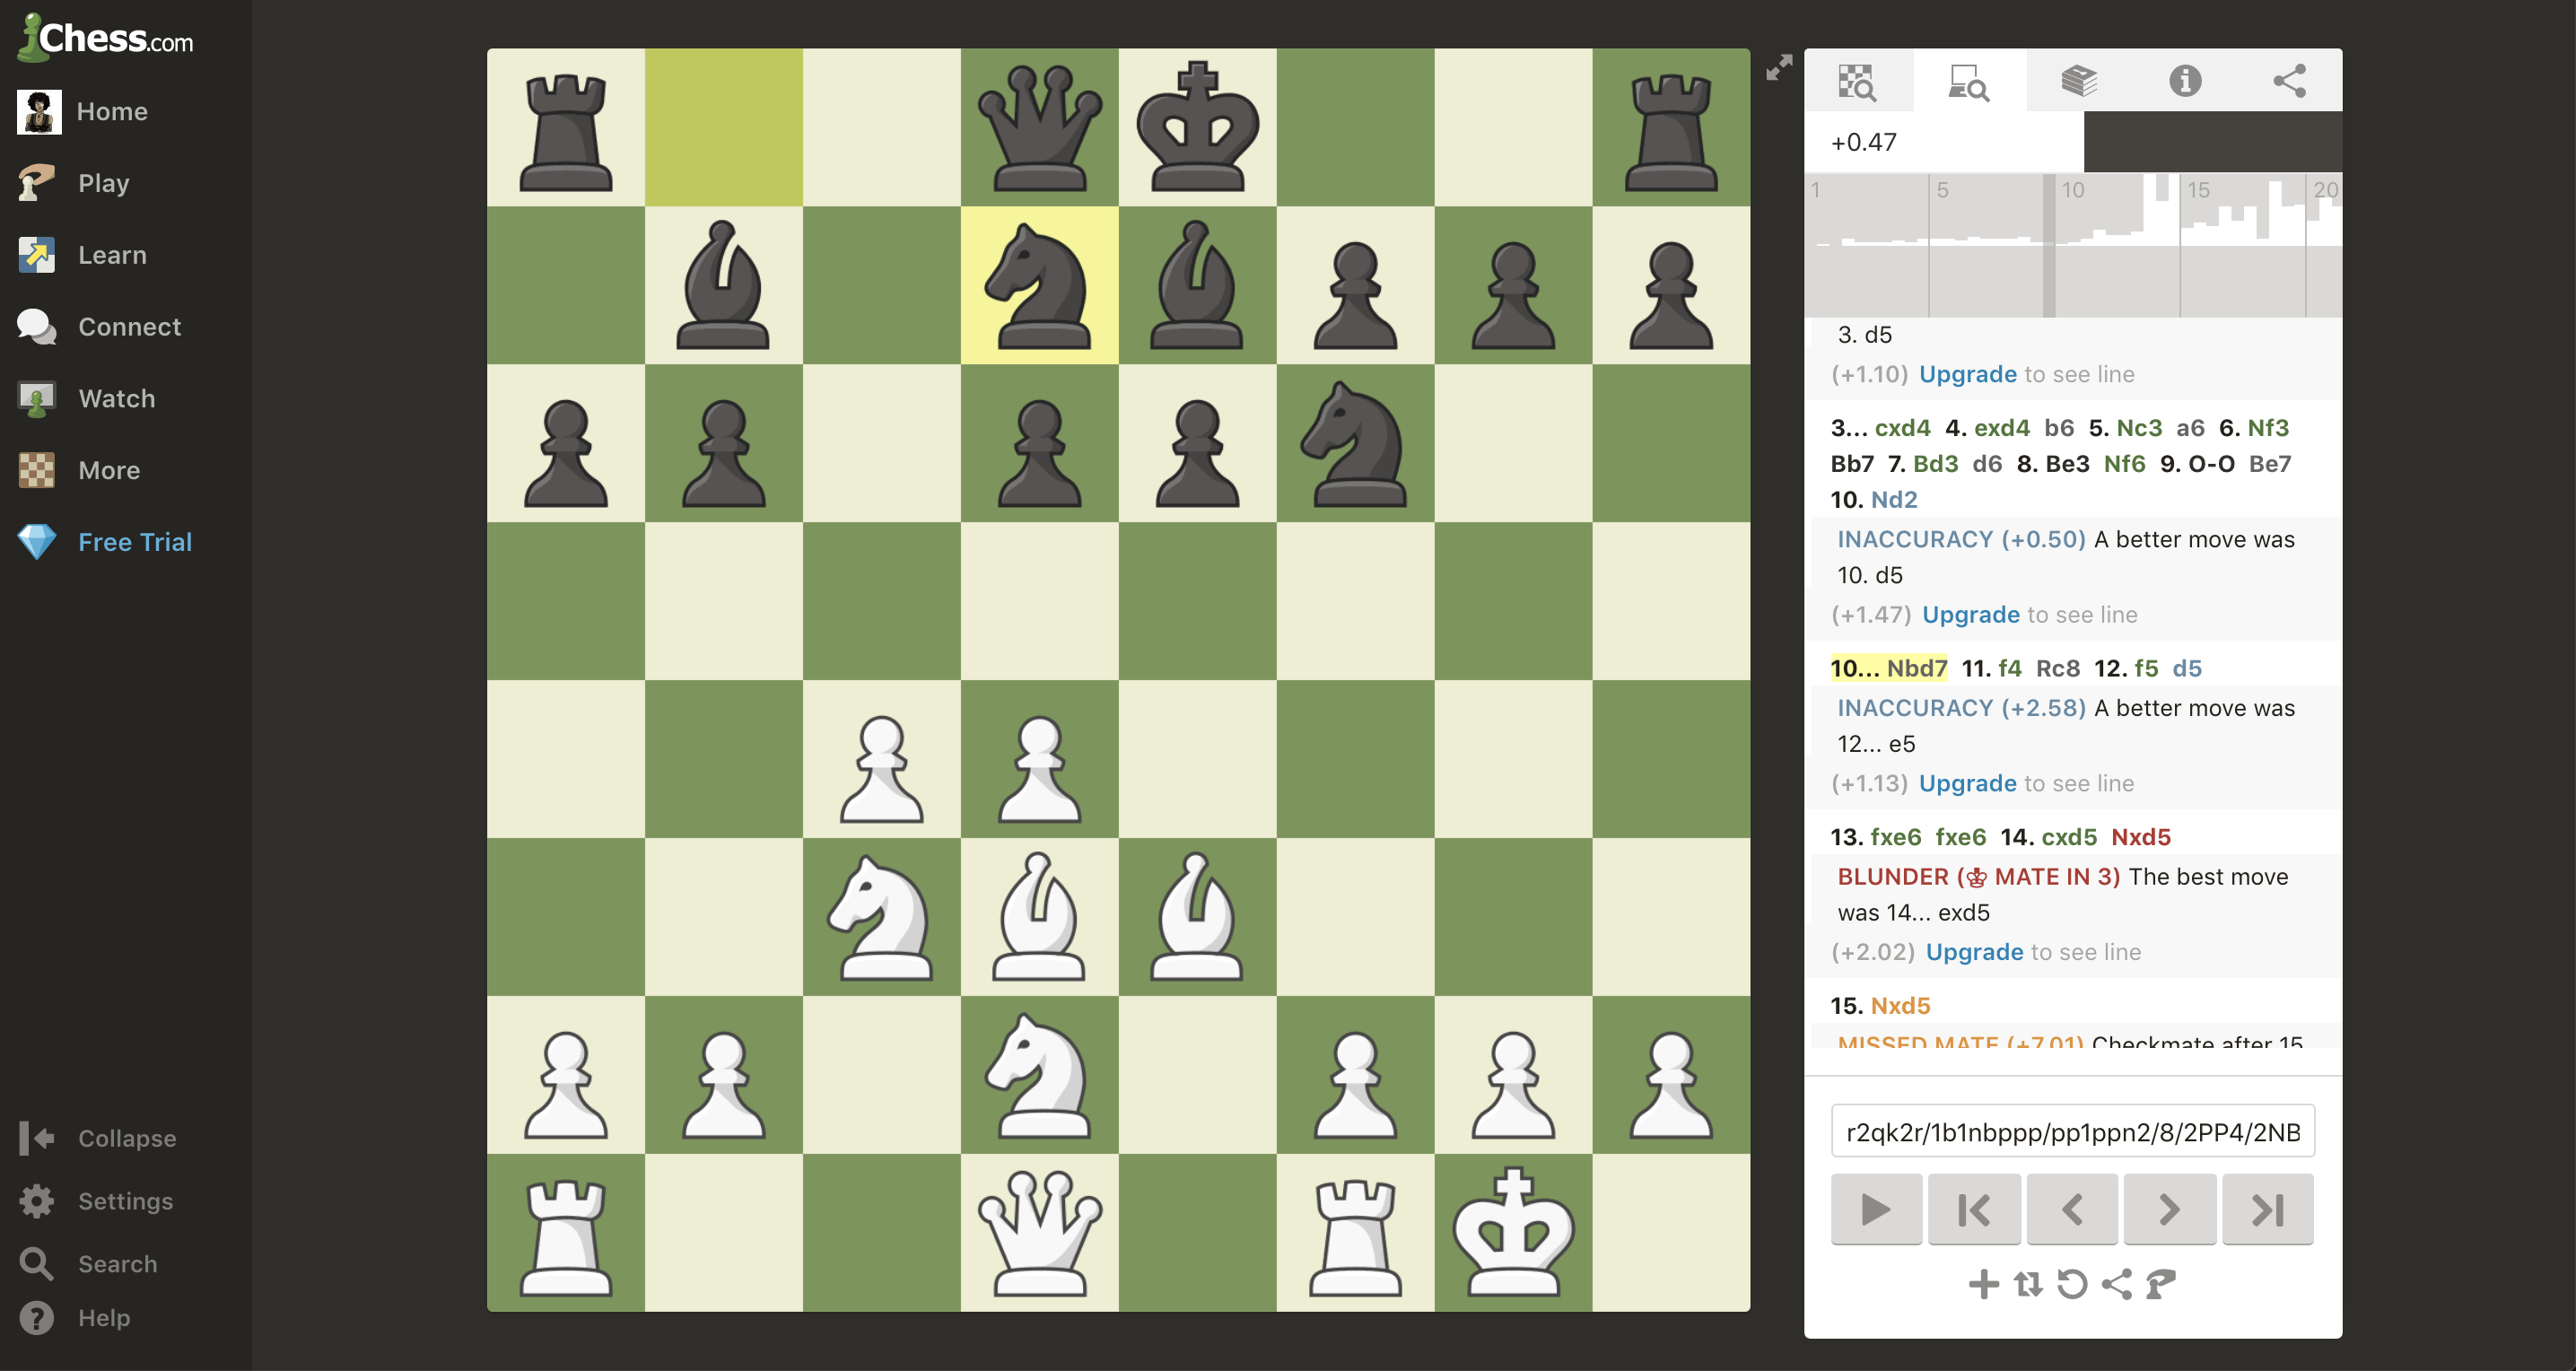 How can I check mate with only 3 moves in this position